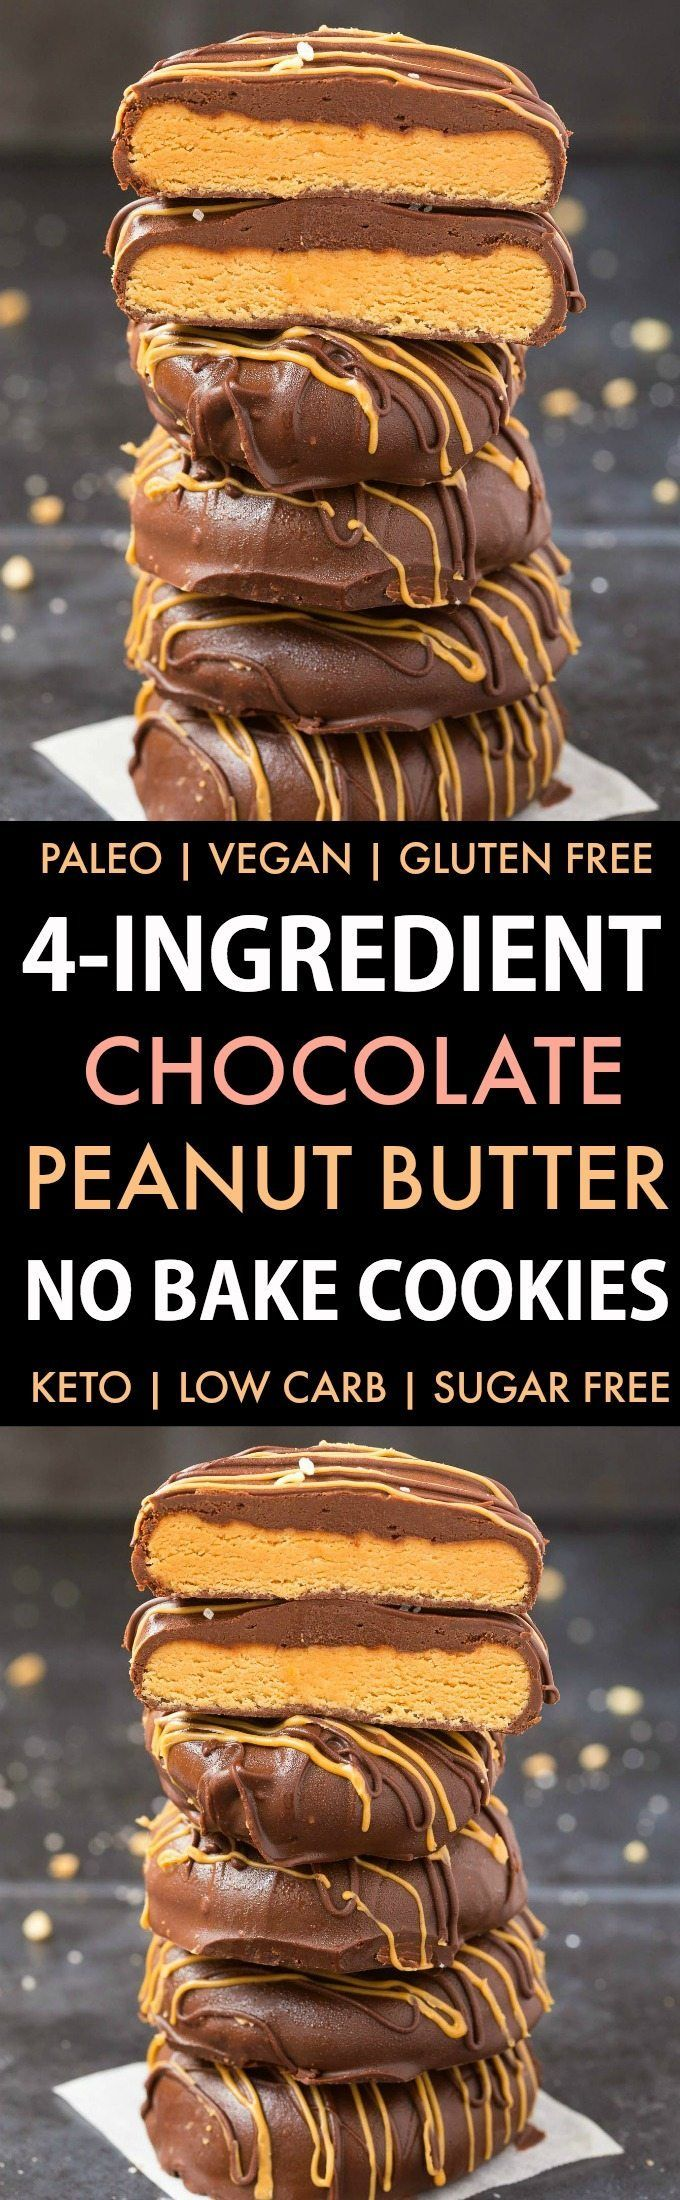 4-Ingredient No Bake Chocolate Peanut Butter Cookies (Paleo, Vegan, Keto, Sugar Free, Gluten Free) Easy, delicious low carb cookies.